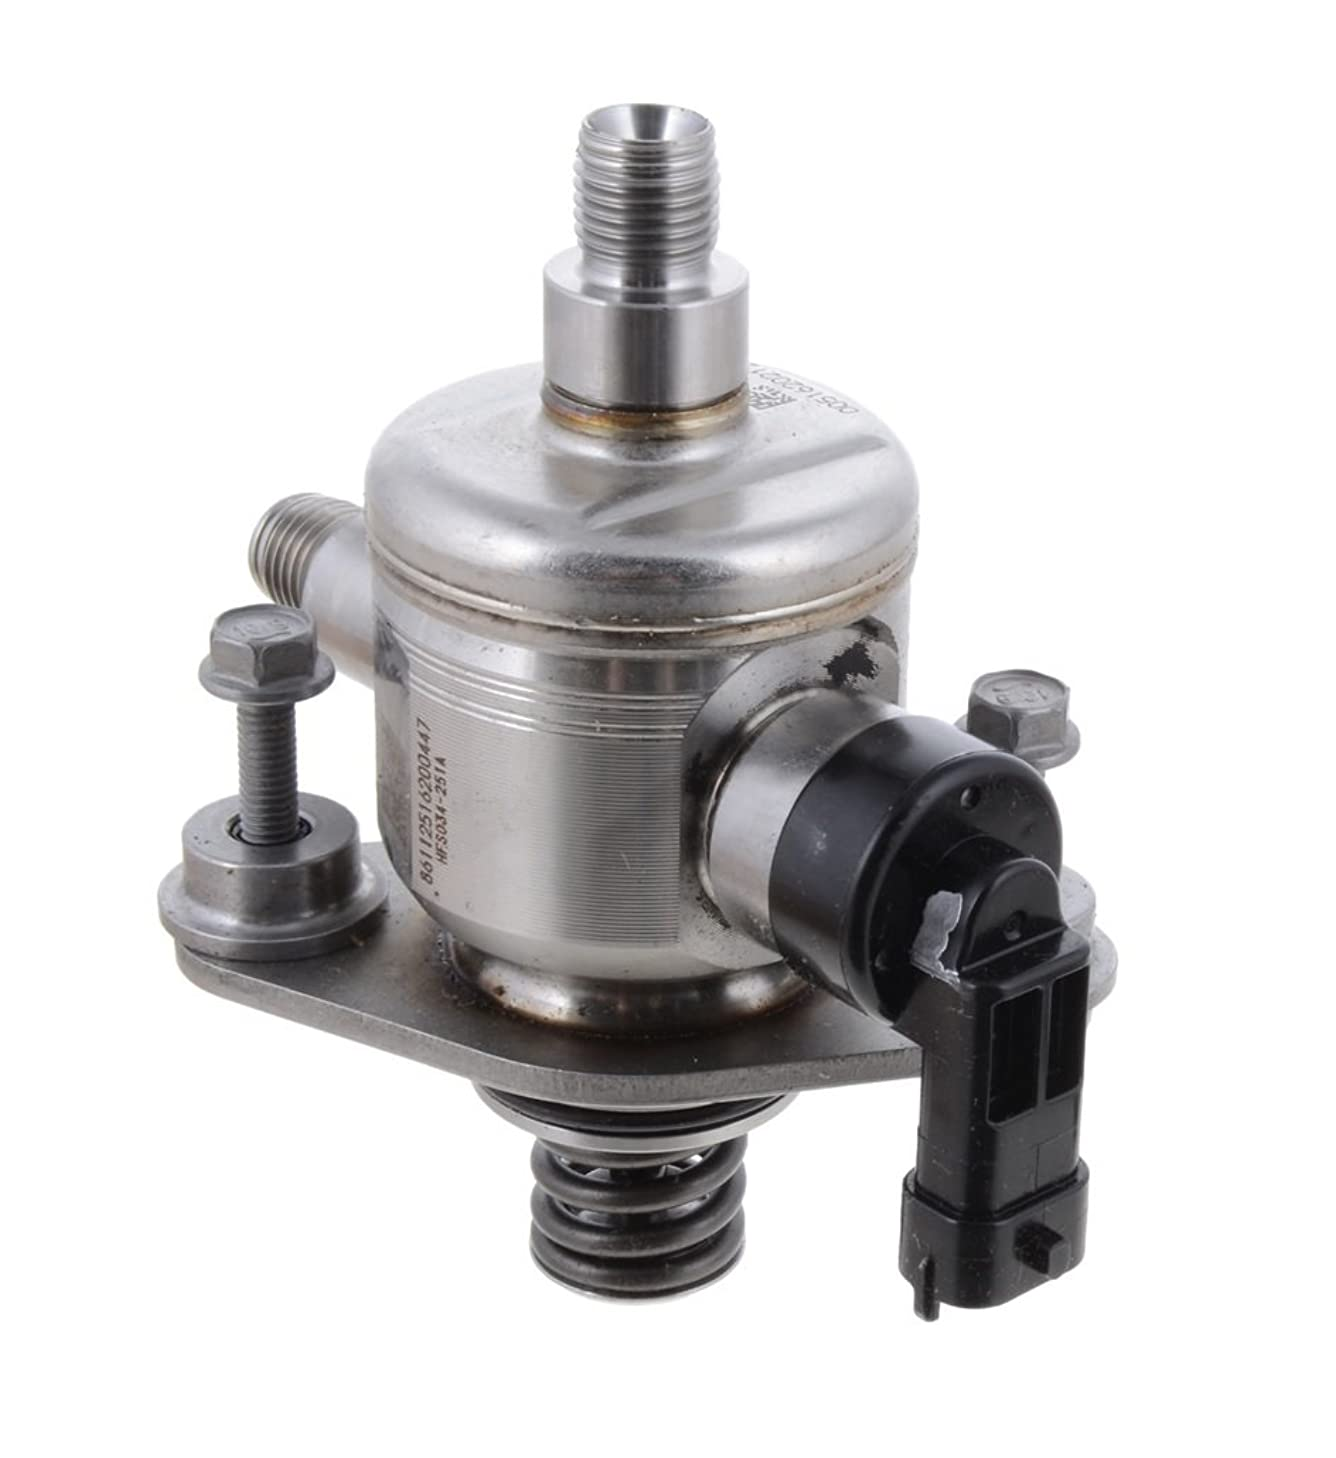 Carter M73113 Direct Injection Fuel Pump